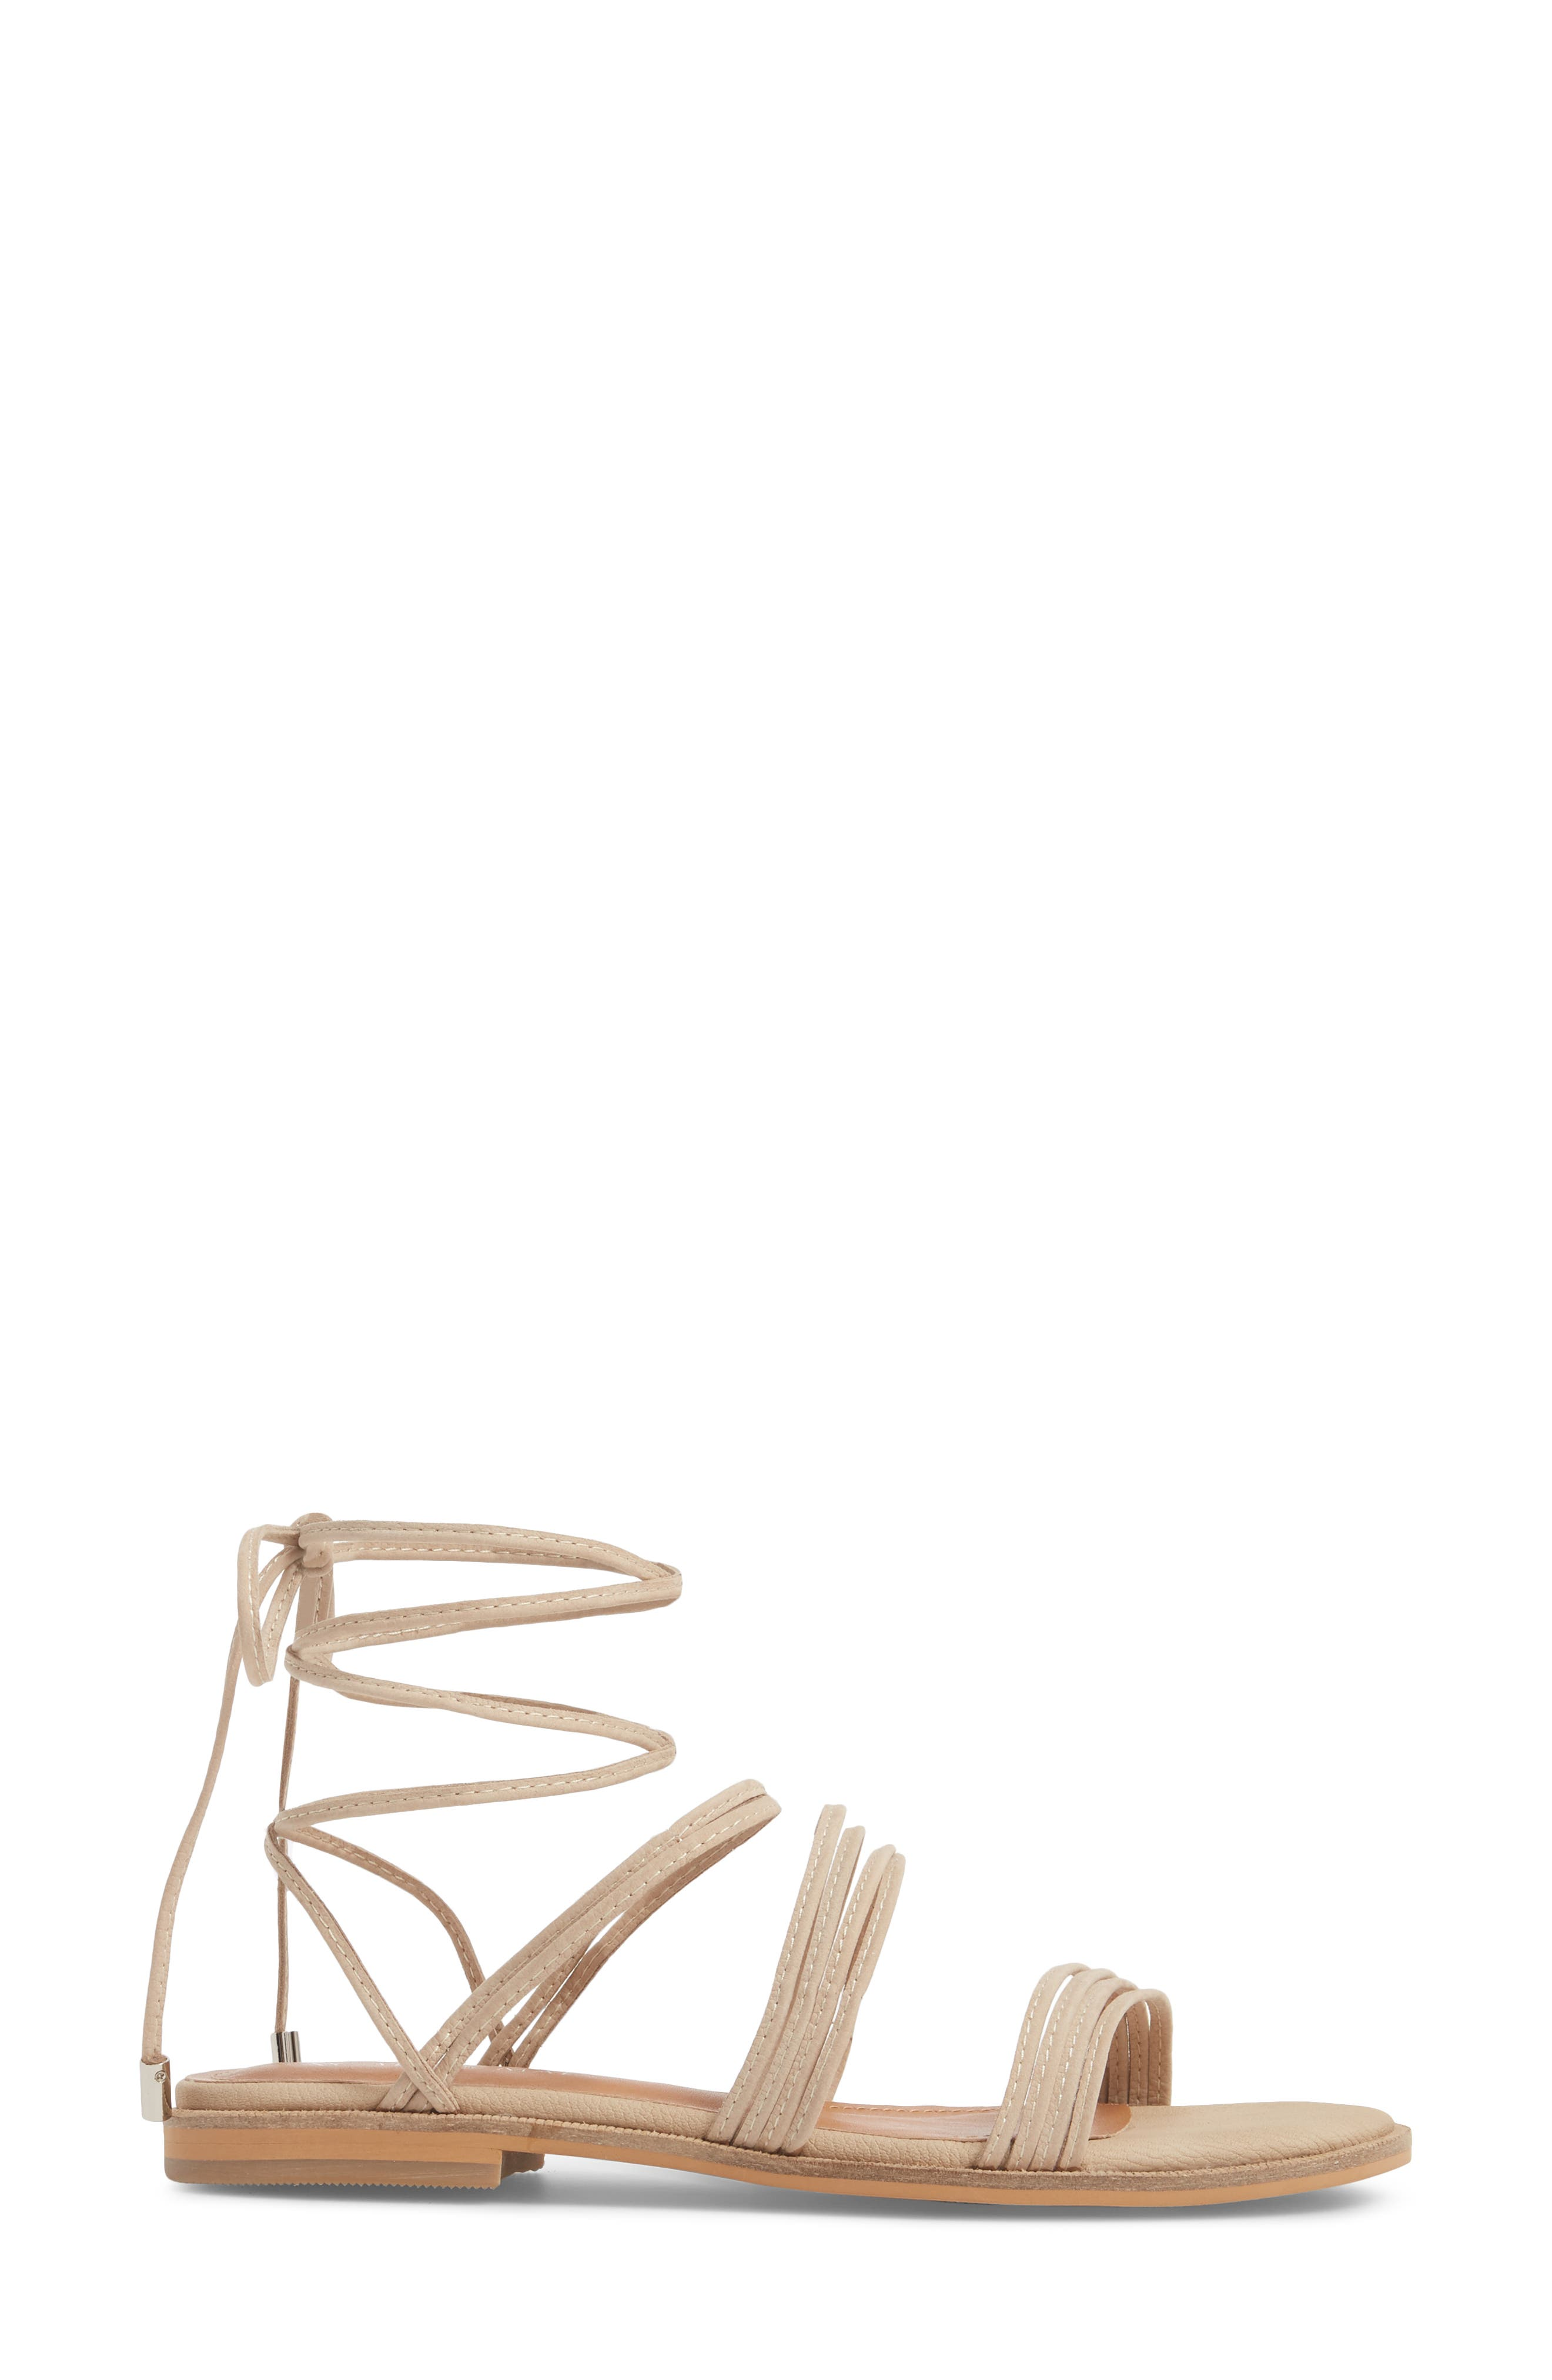 Theory Strappy Flat Sandal,                             Alternate thumbnail 8, color,